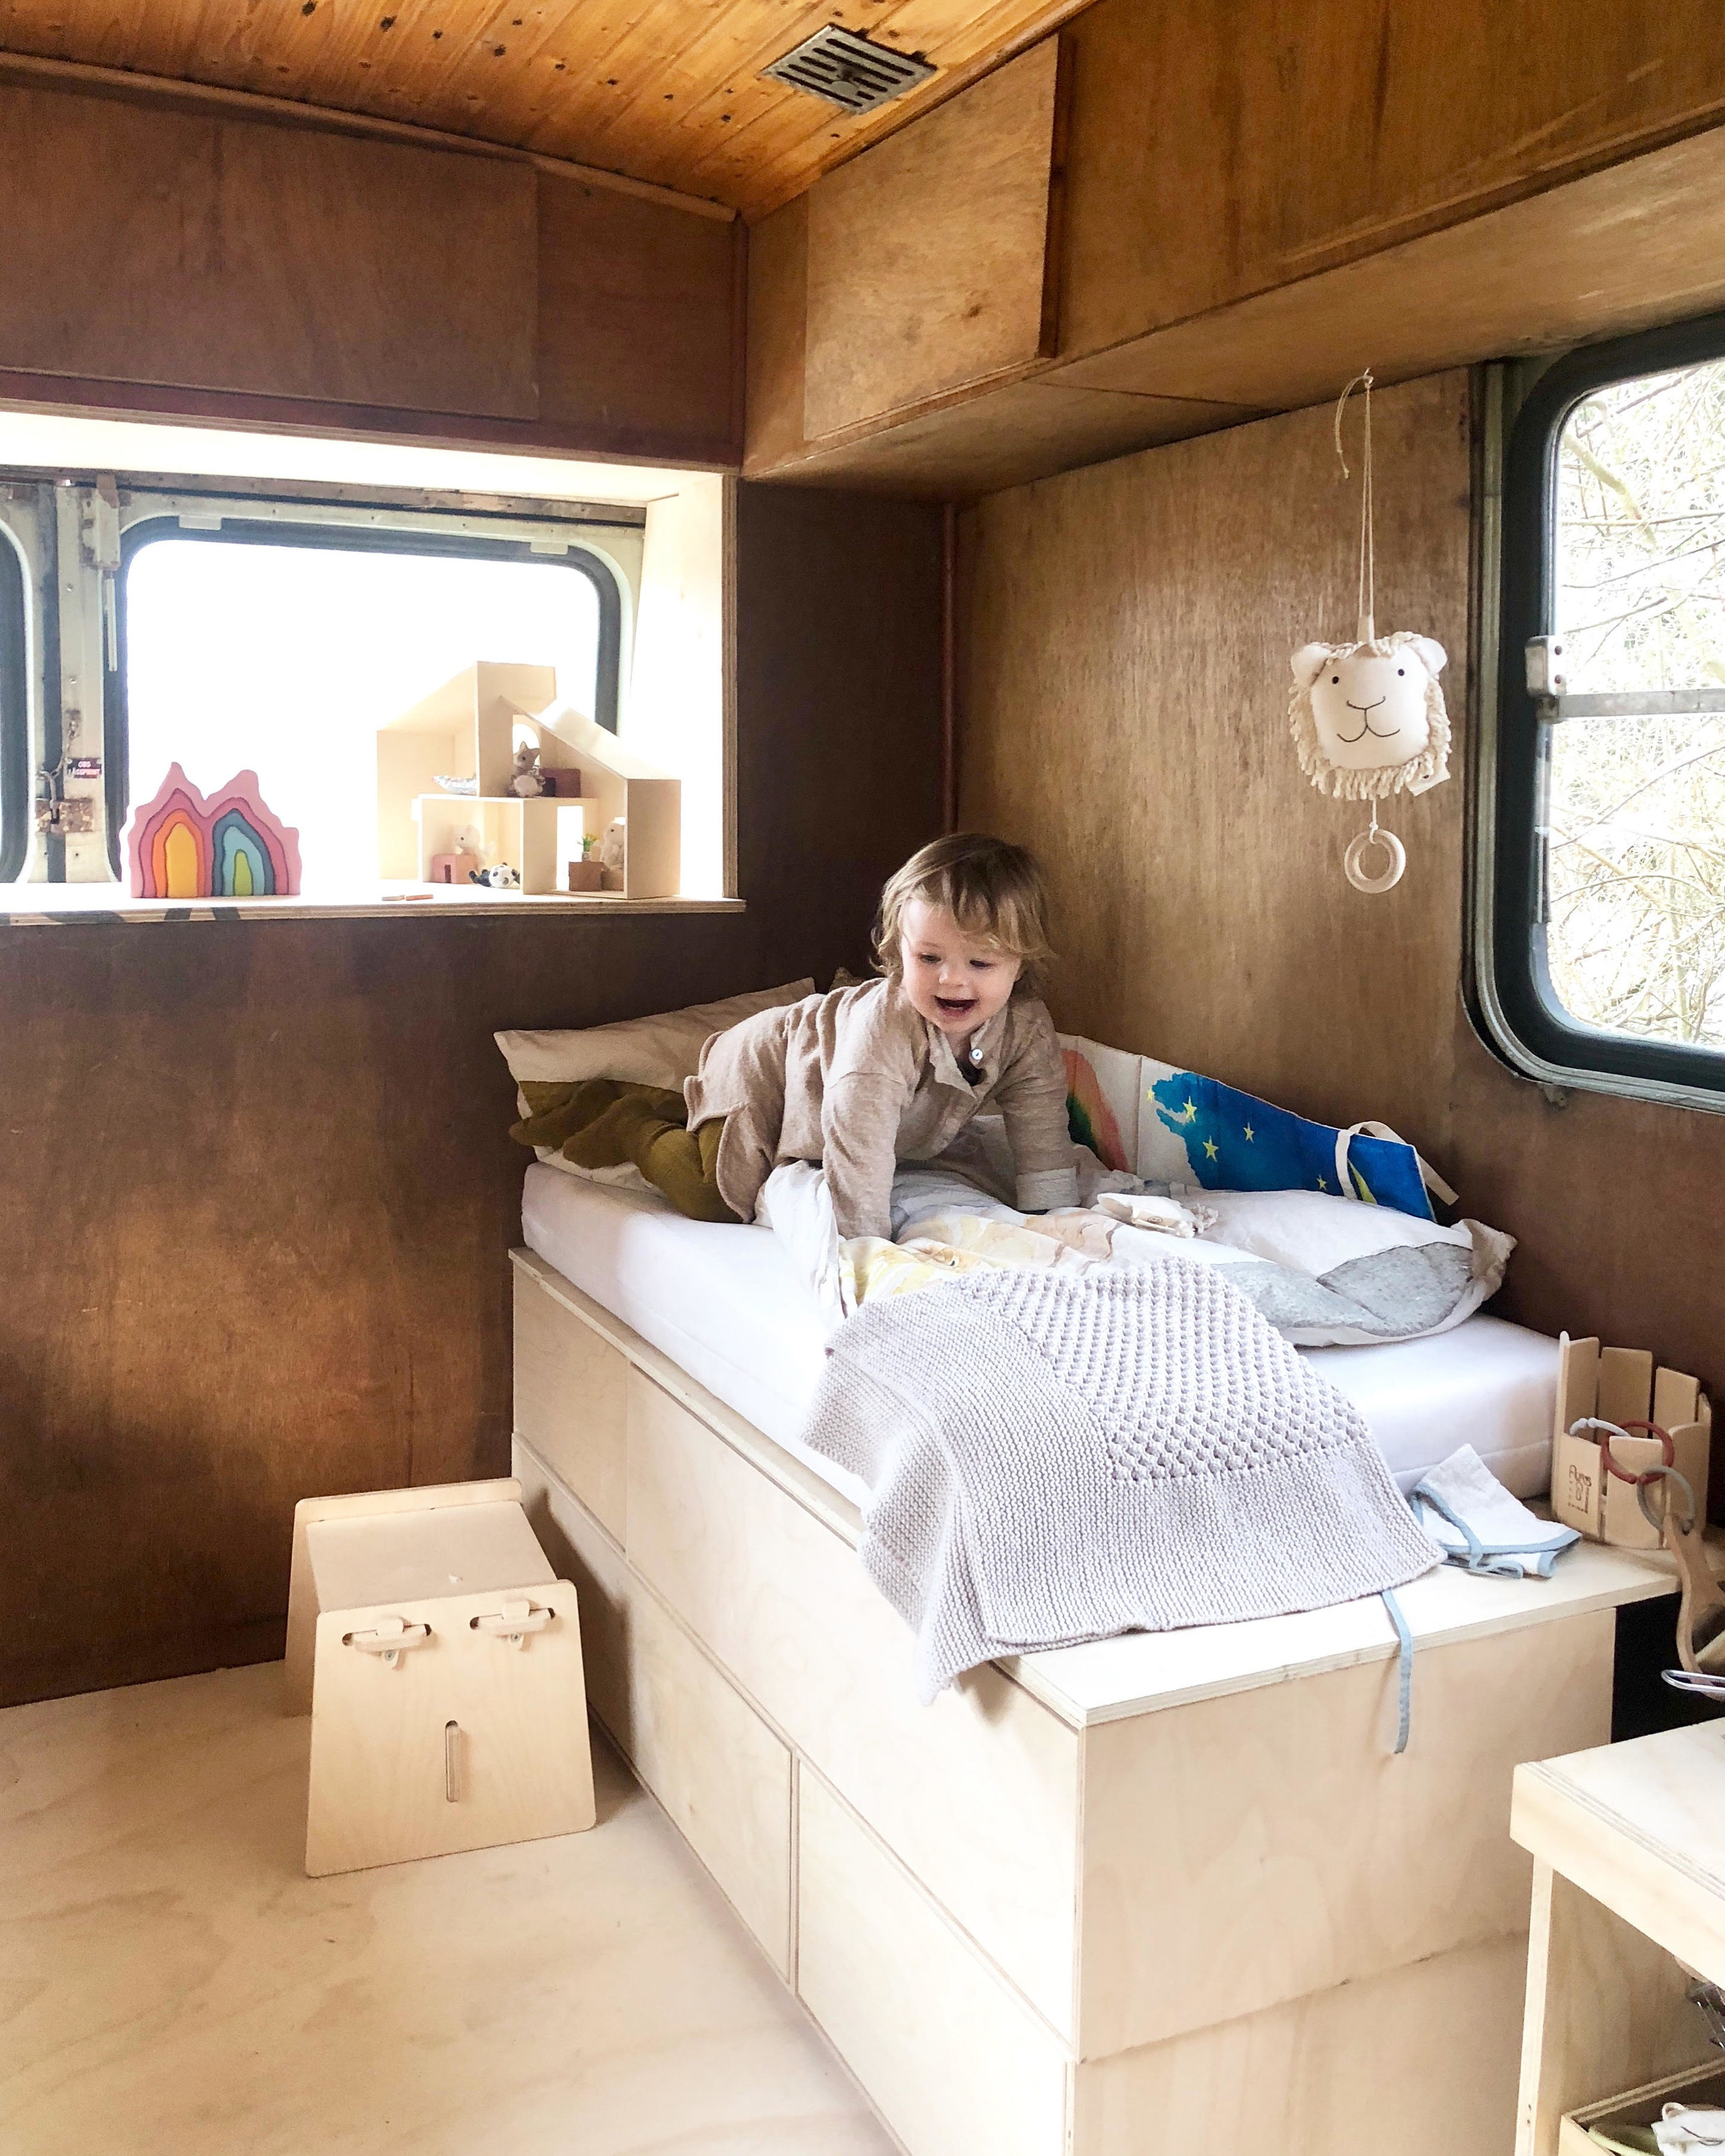 Hilma in her new bed in the bus. Fabric book from Leo Leo.